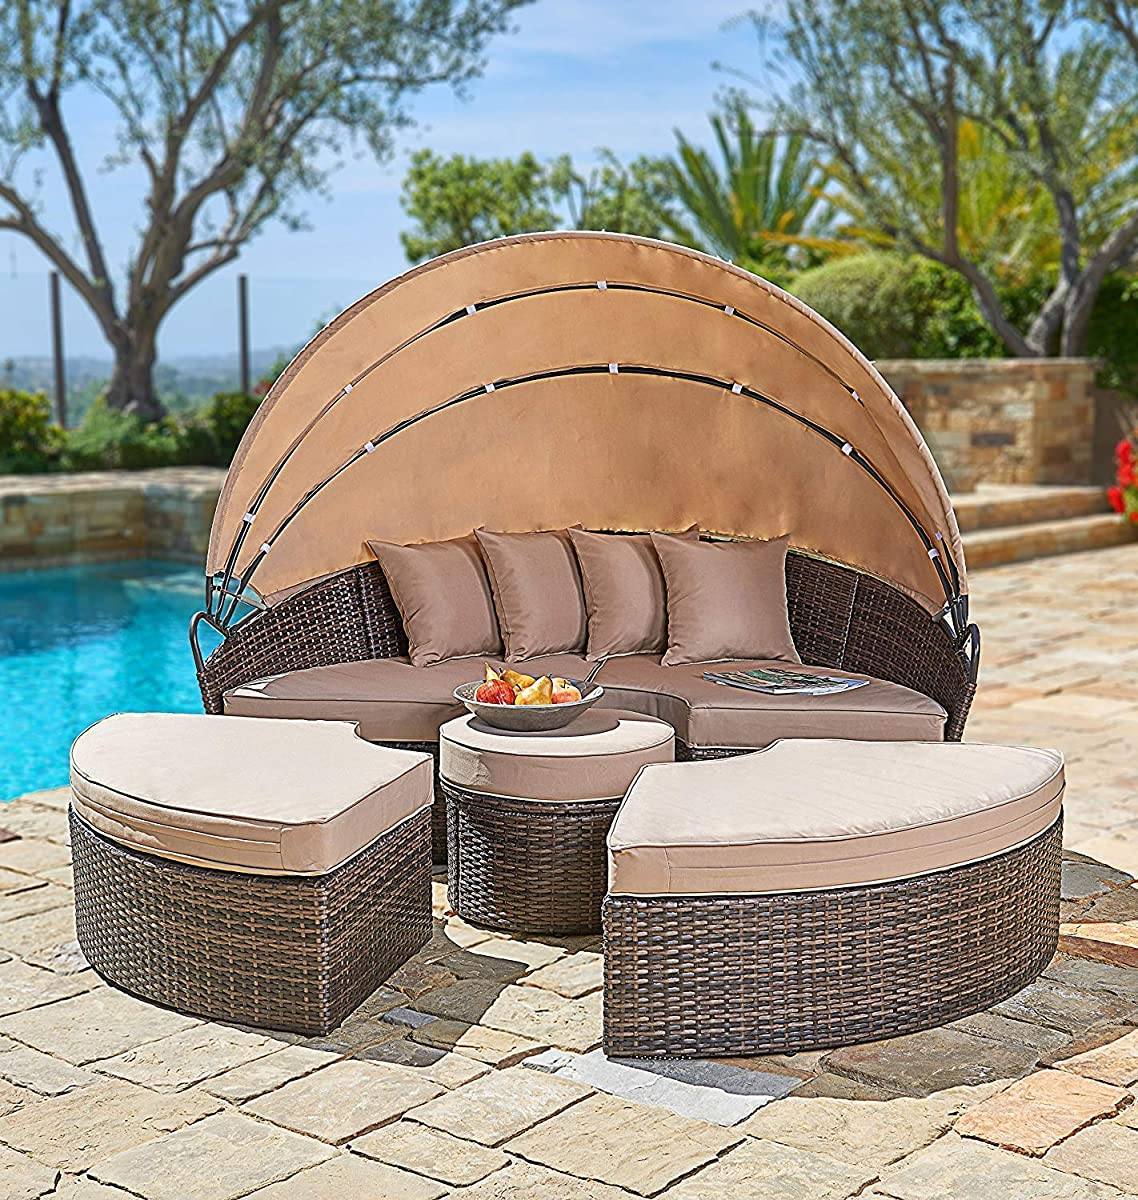 SUNCROWN Outdoor Patio Round Daybed 6 Piece Brown Wicker Patio Furniture with Retractable Canopy | Clamshell Sectional Seating w/Table | All-Weather Washable Cushions | Patio, Backyard, Porch, Pool